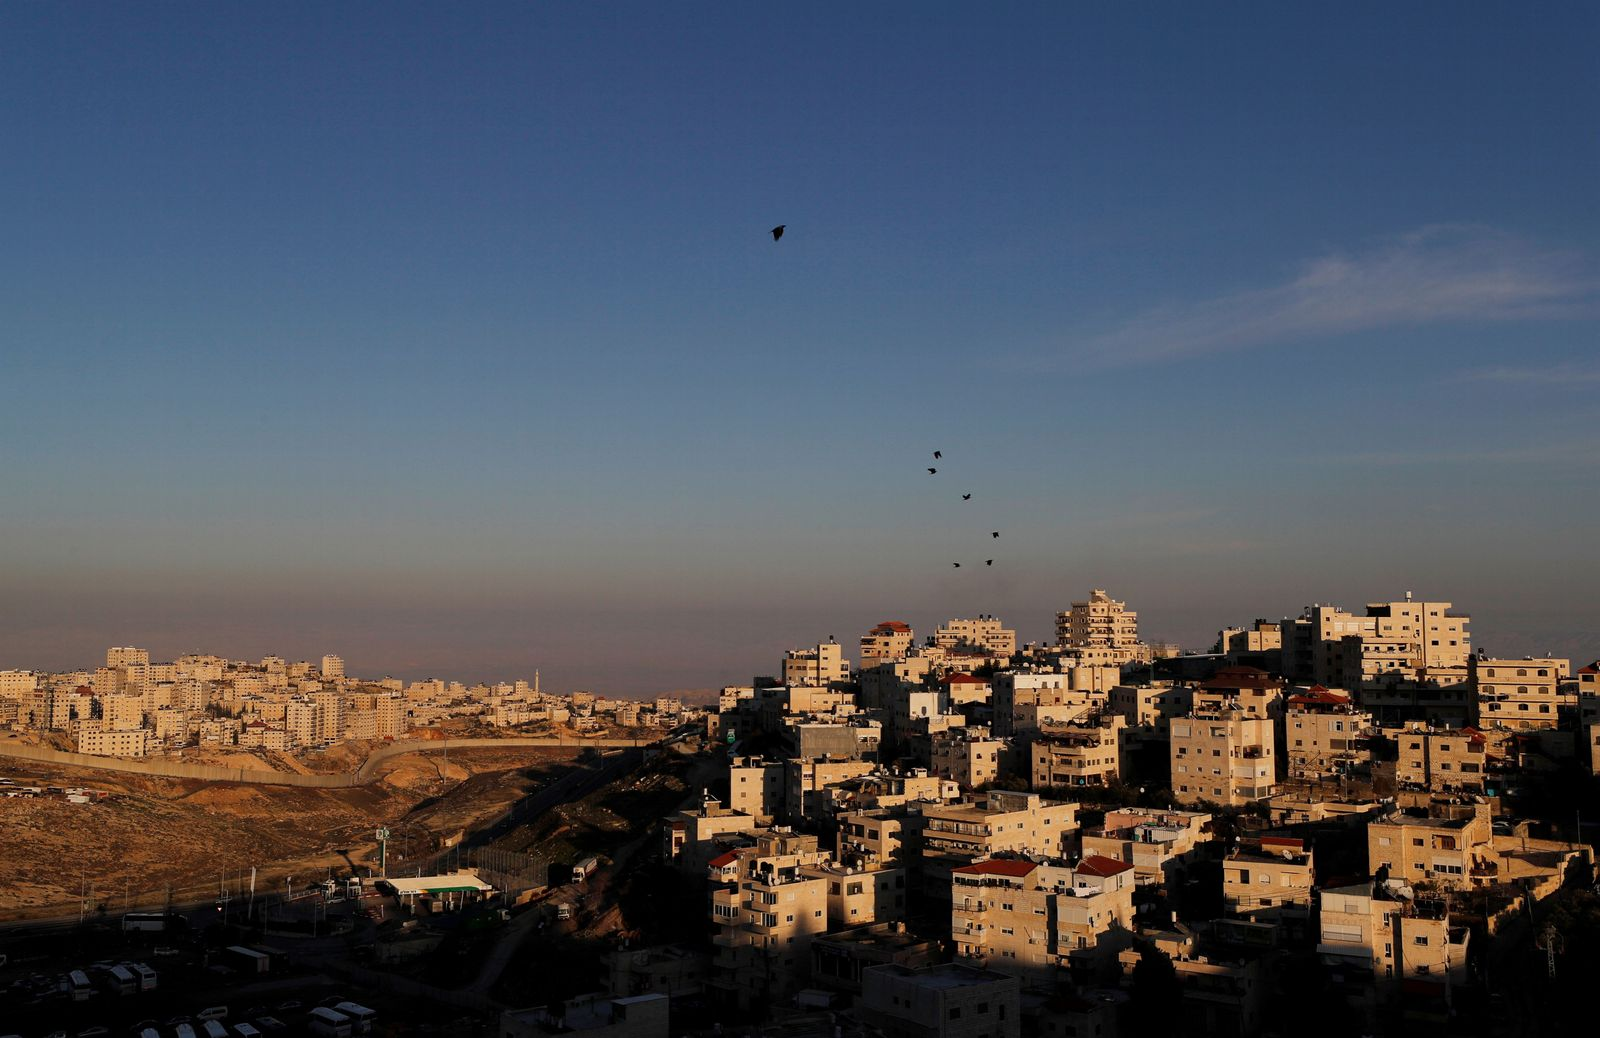 FILE PHOTO: A general view picture shows the Issawiya neighbourhood and the Israeli barrier running along the Shuafat refugee camp in East Jerusalem, in an area Israel annexed to Jerusalem after capturing it in the 1967 Middle East war